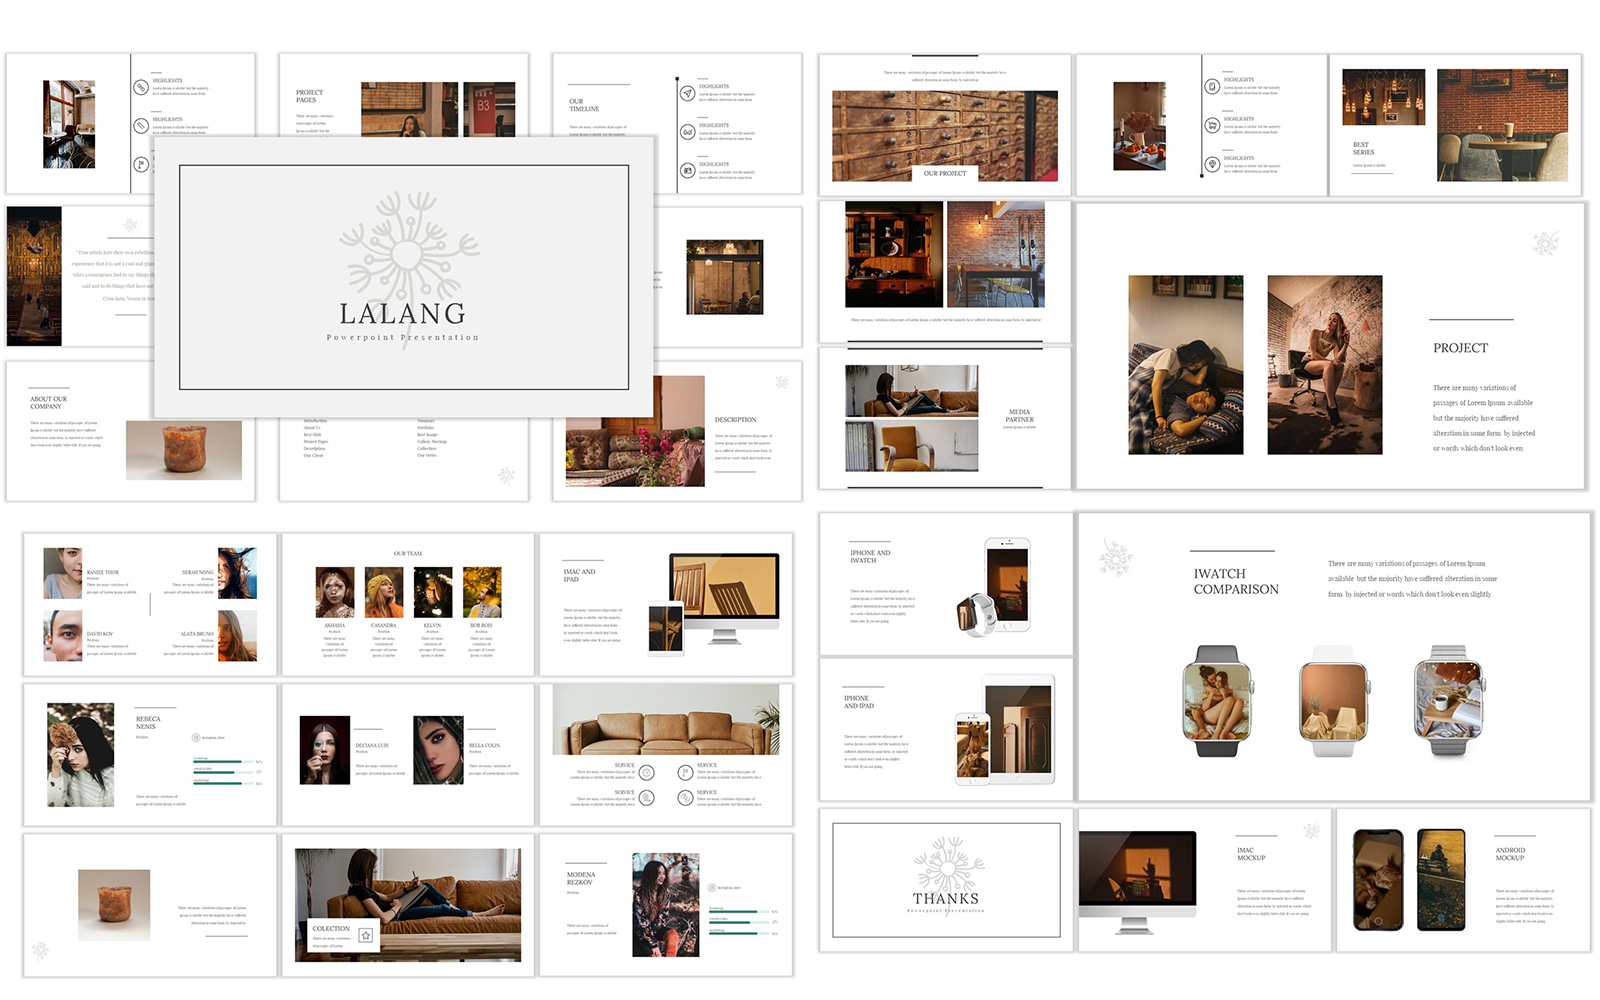 Lalang PowerPoint Template